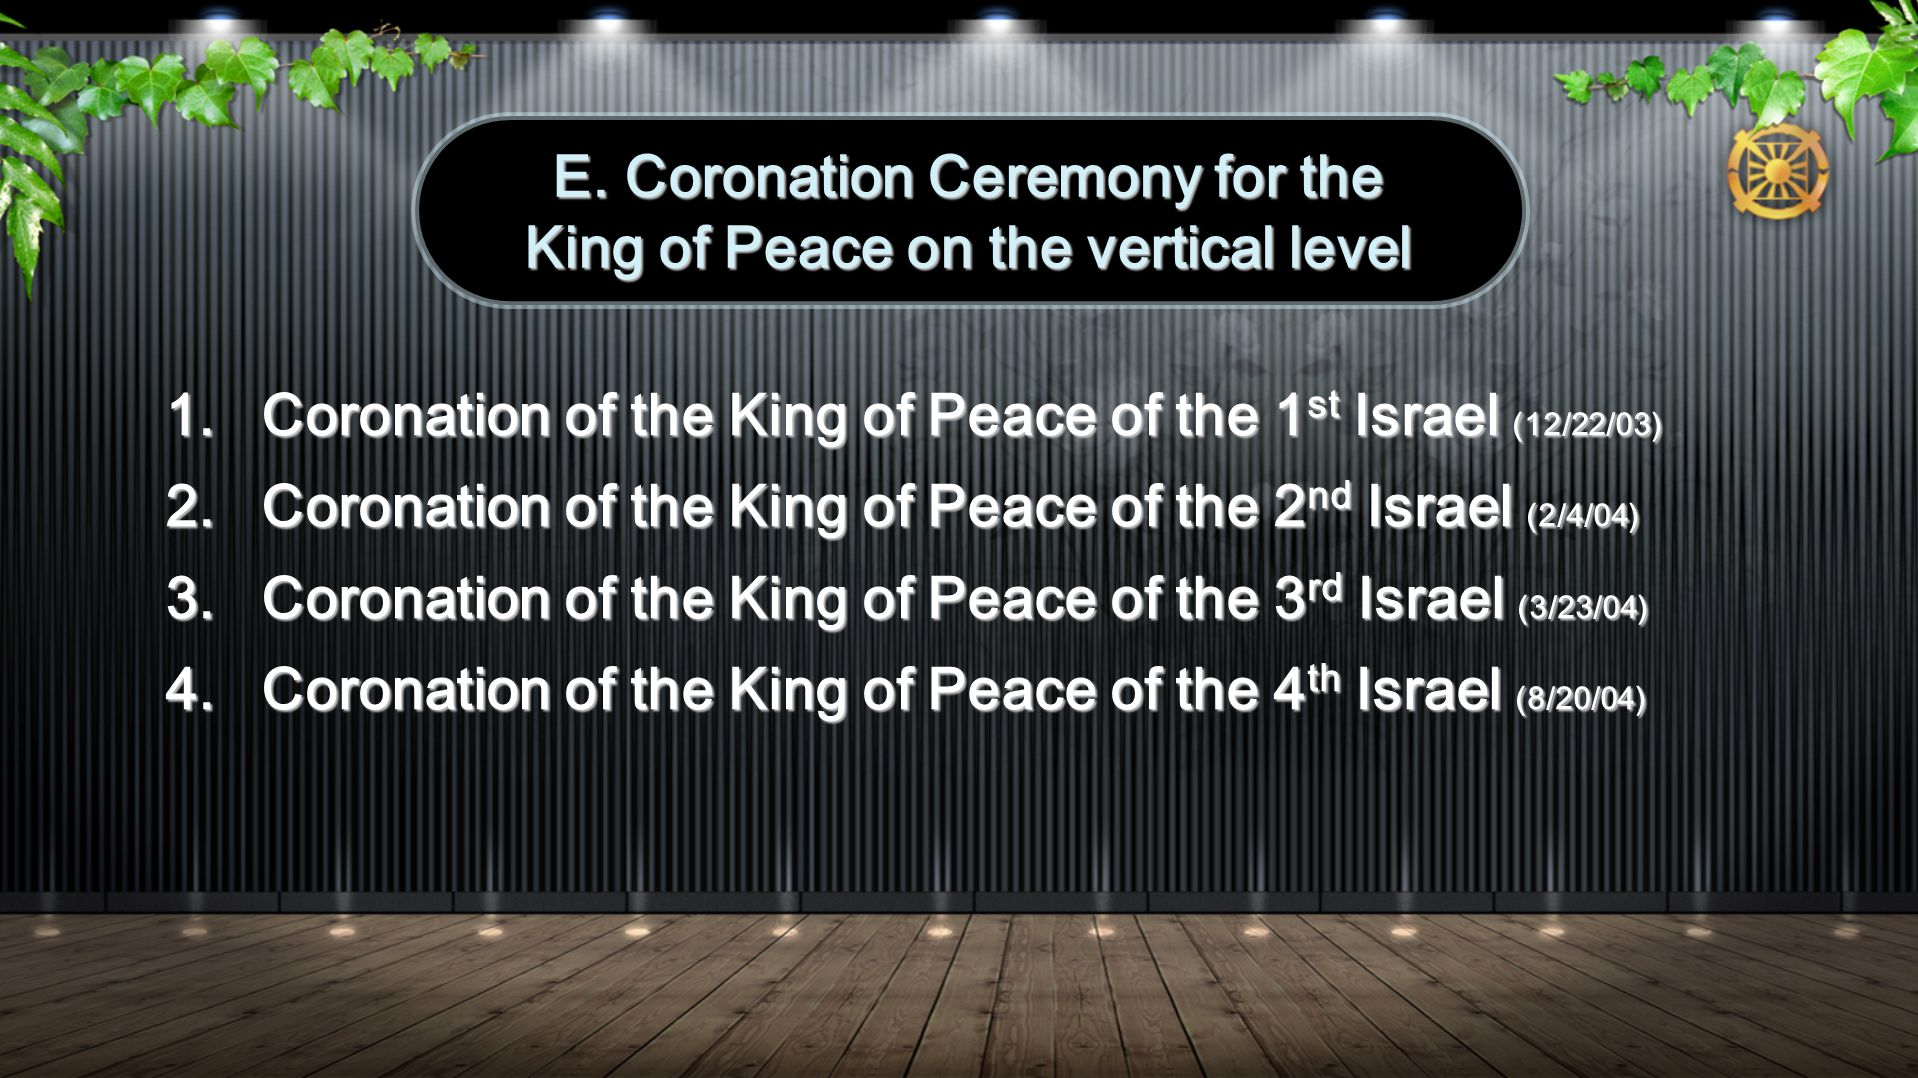 1.Coronation of the King of Peace on the Tribal Level (8/21-12/31/04) 2.